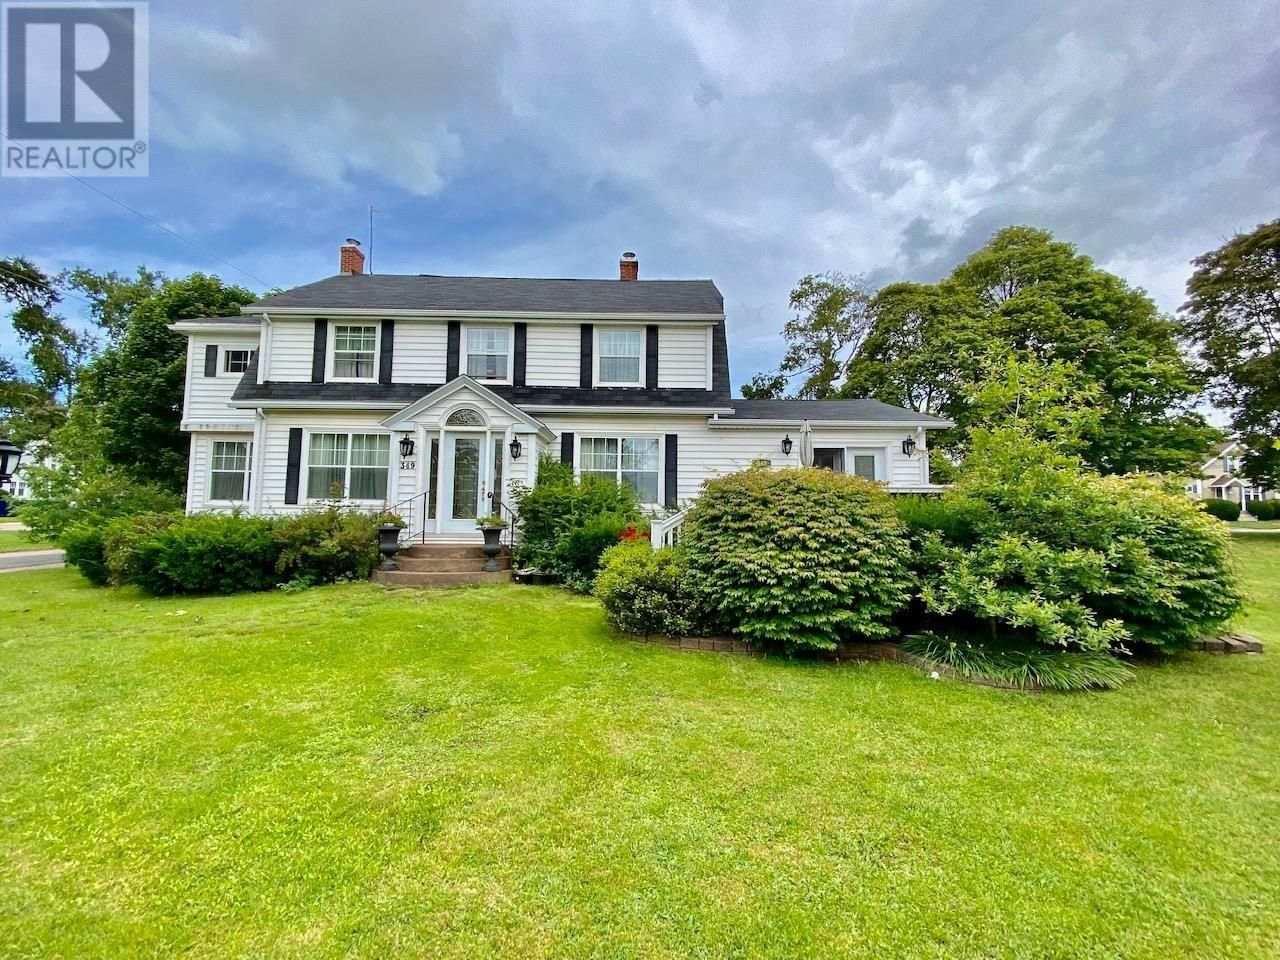 Photo 2: Photos: 349 Beaver Street in Summerside: House for sale : MLS®# 202120610